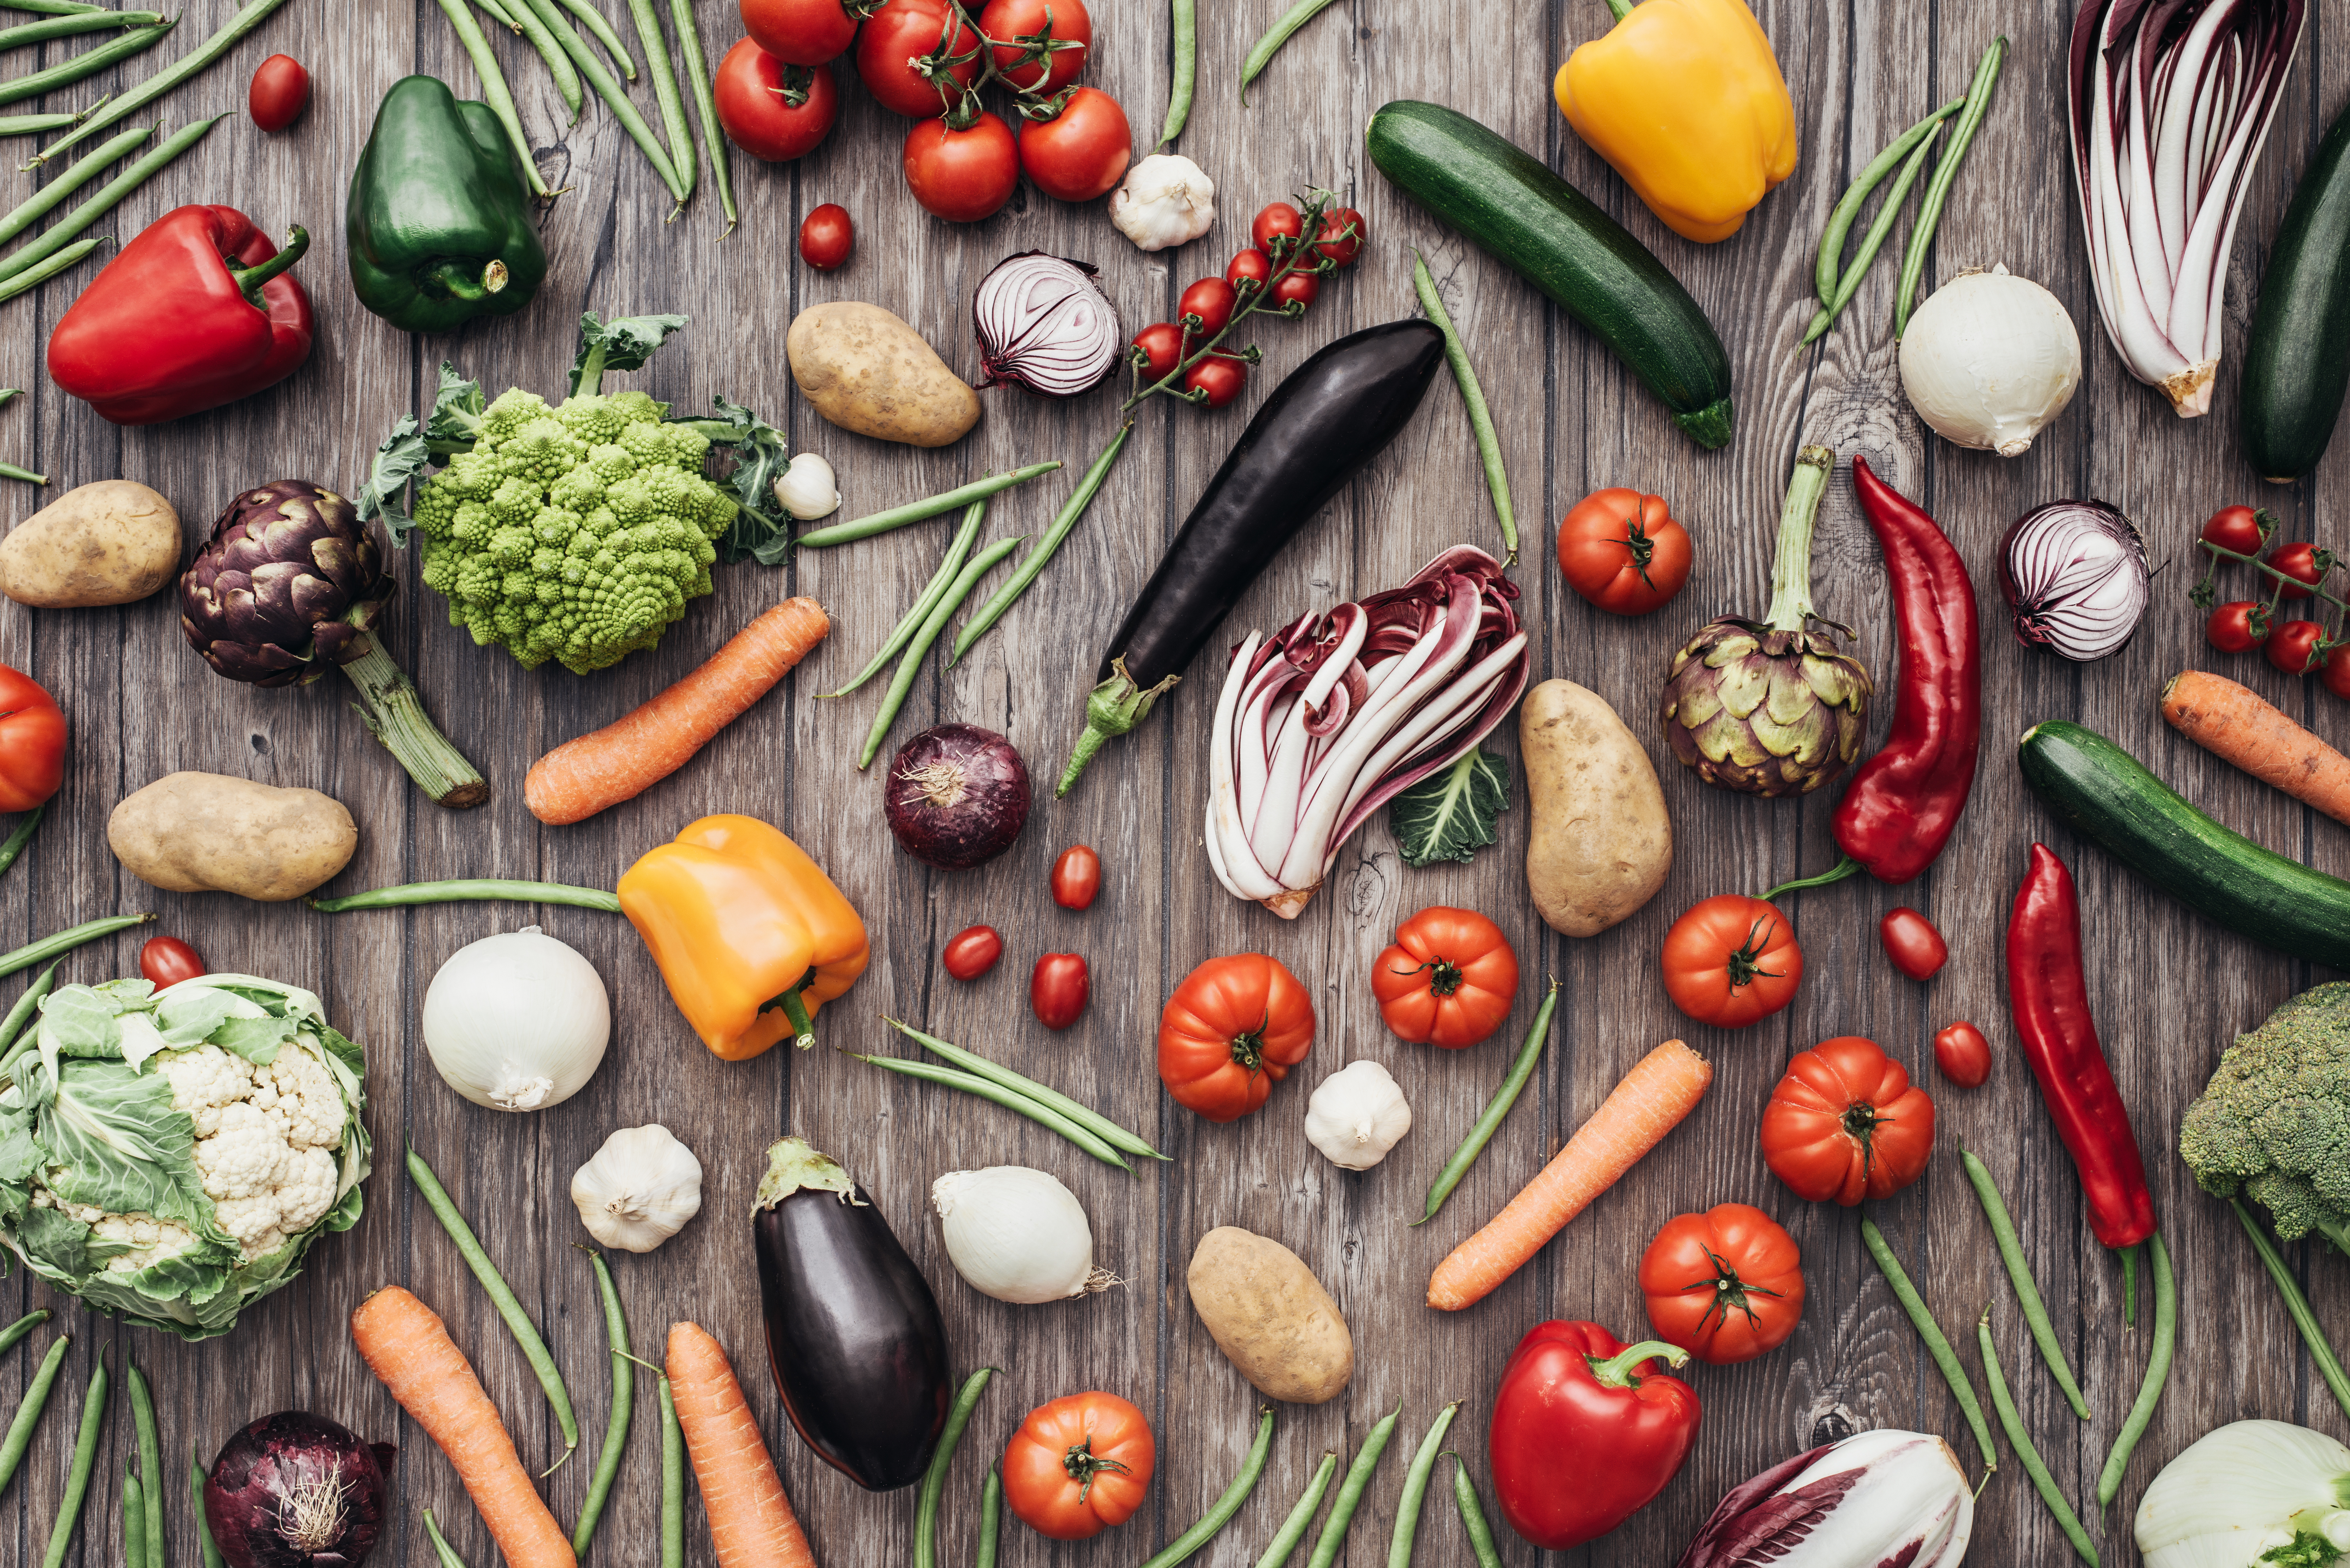 12 Beautiful Foods to Eat on a Plant Based Diet